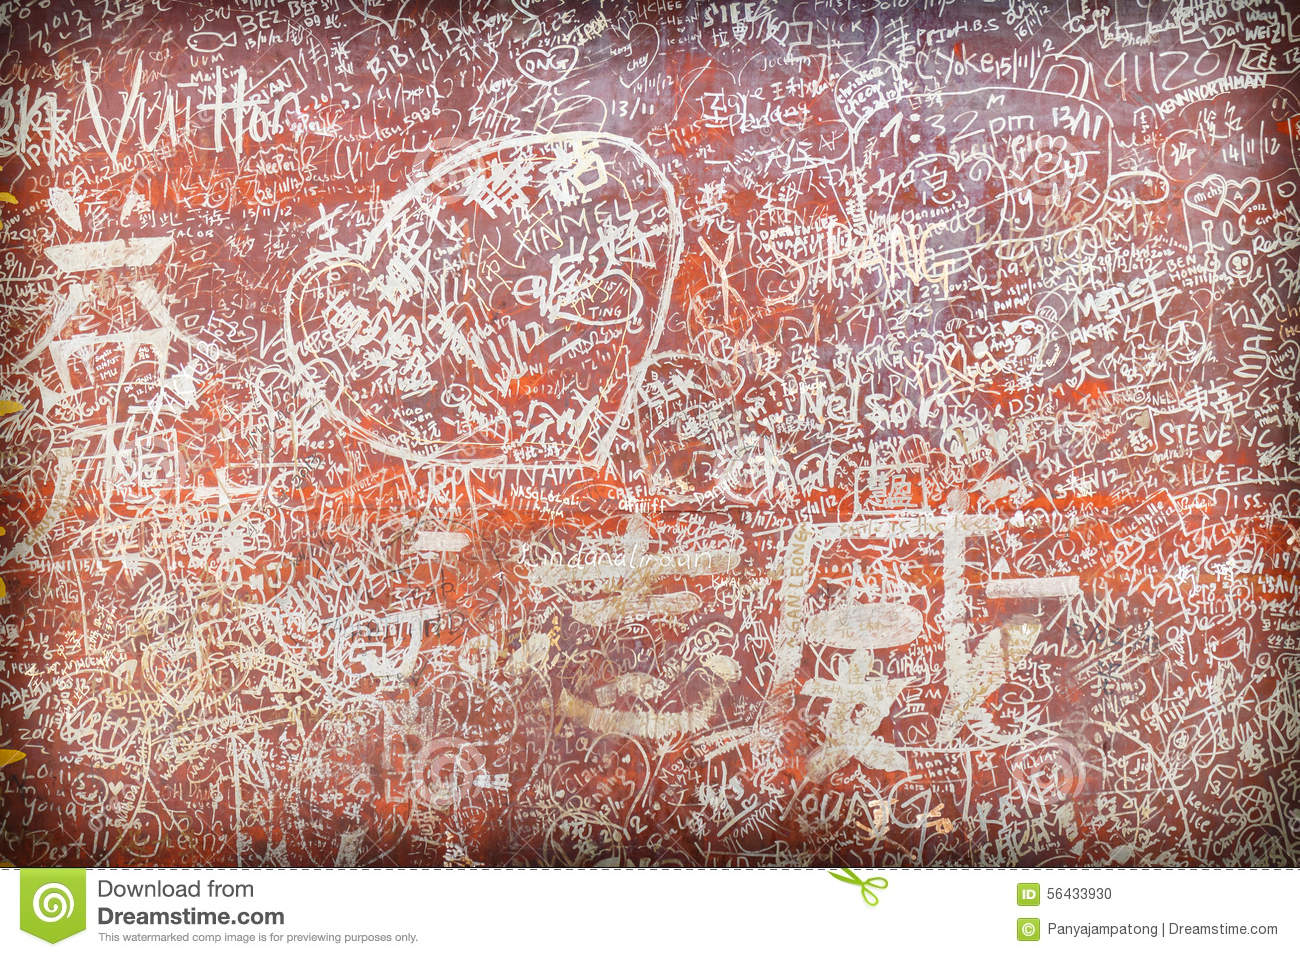 Lots of love carvings initials symbols stock photo image for Lots of pictures on wall